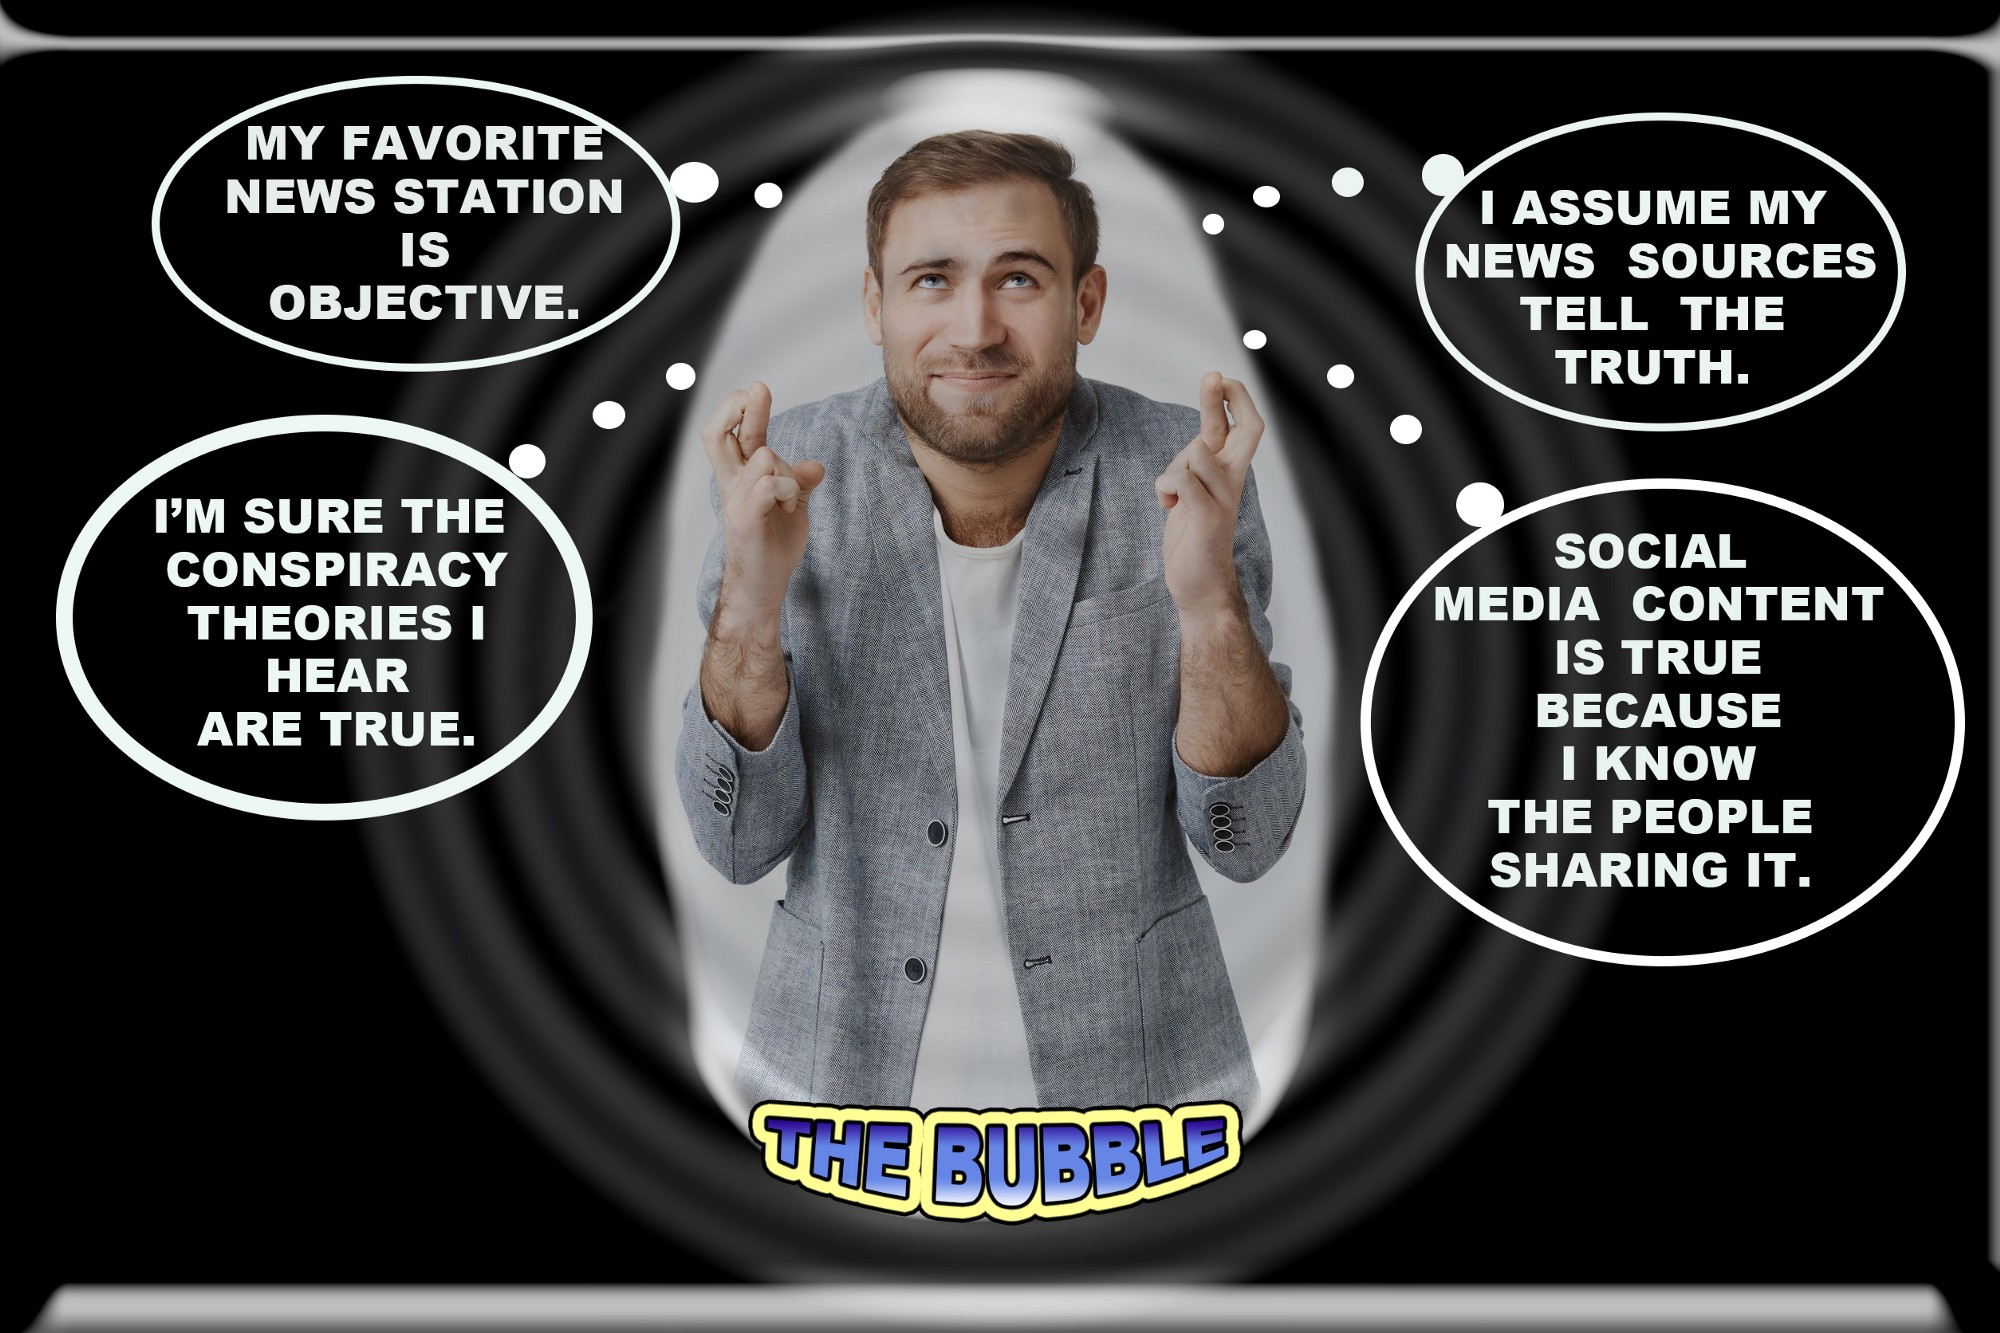 Man in a bubble with fingers crossed hoping his news sources are accurate while thought bubbles show what he is thinking.